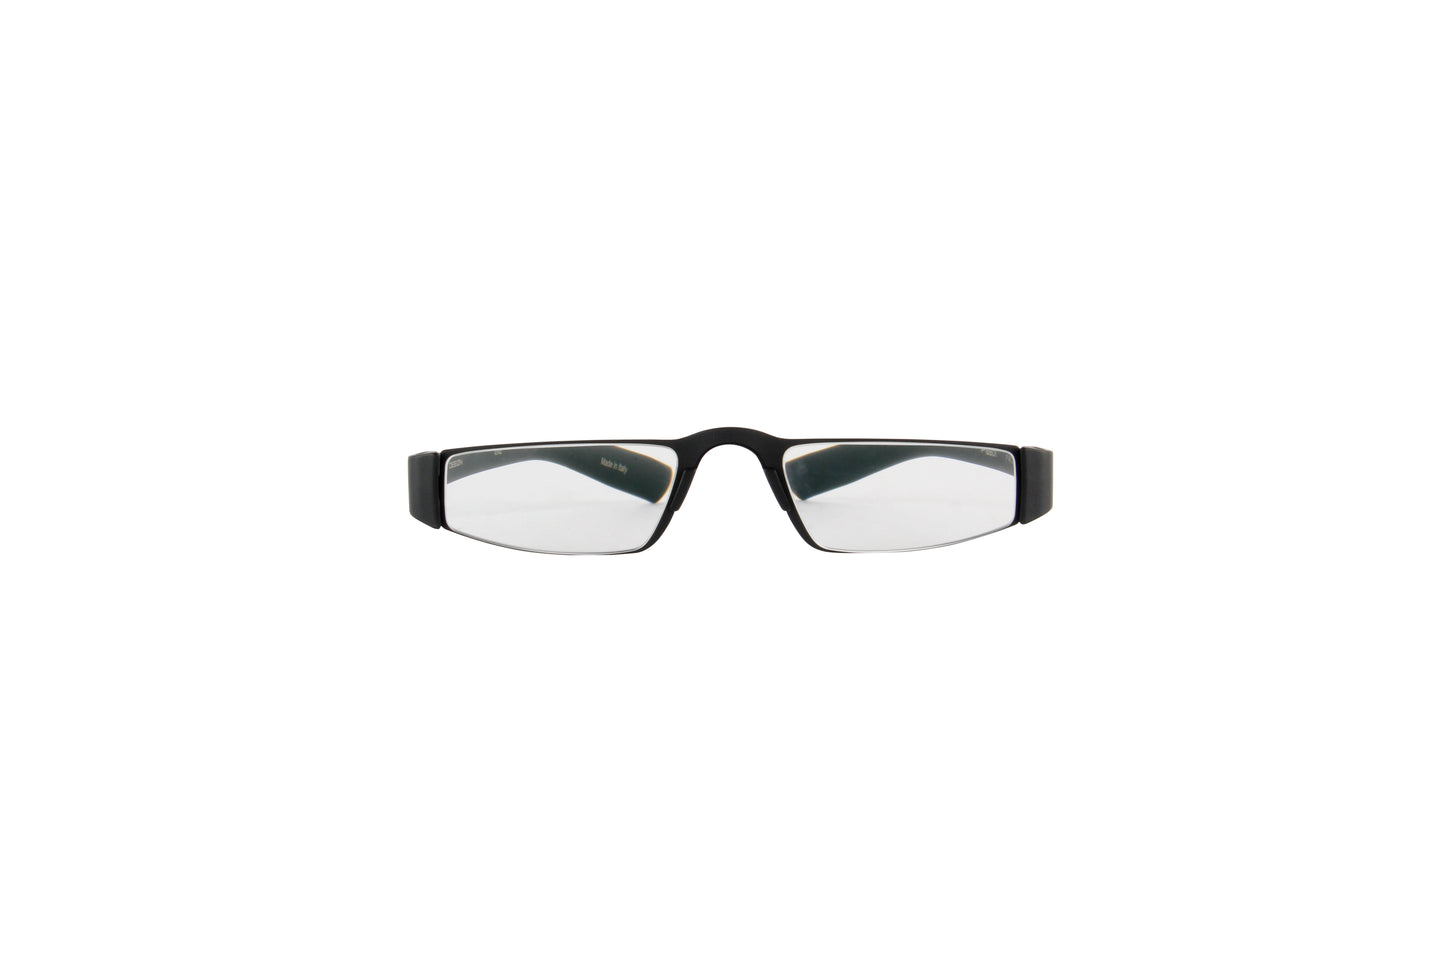 Porsche Design - P8801 +2.50 Black Rectangular Unisex Readers - 48mm